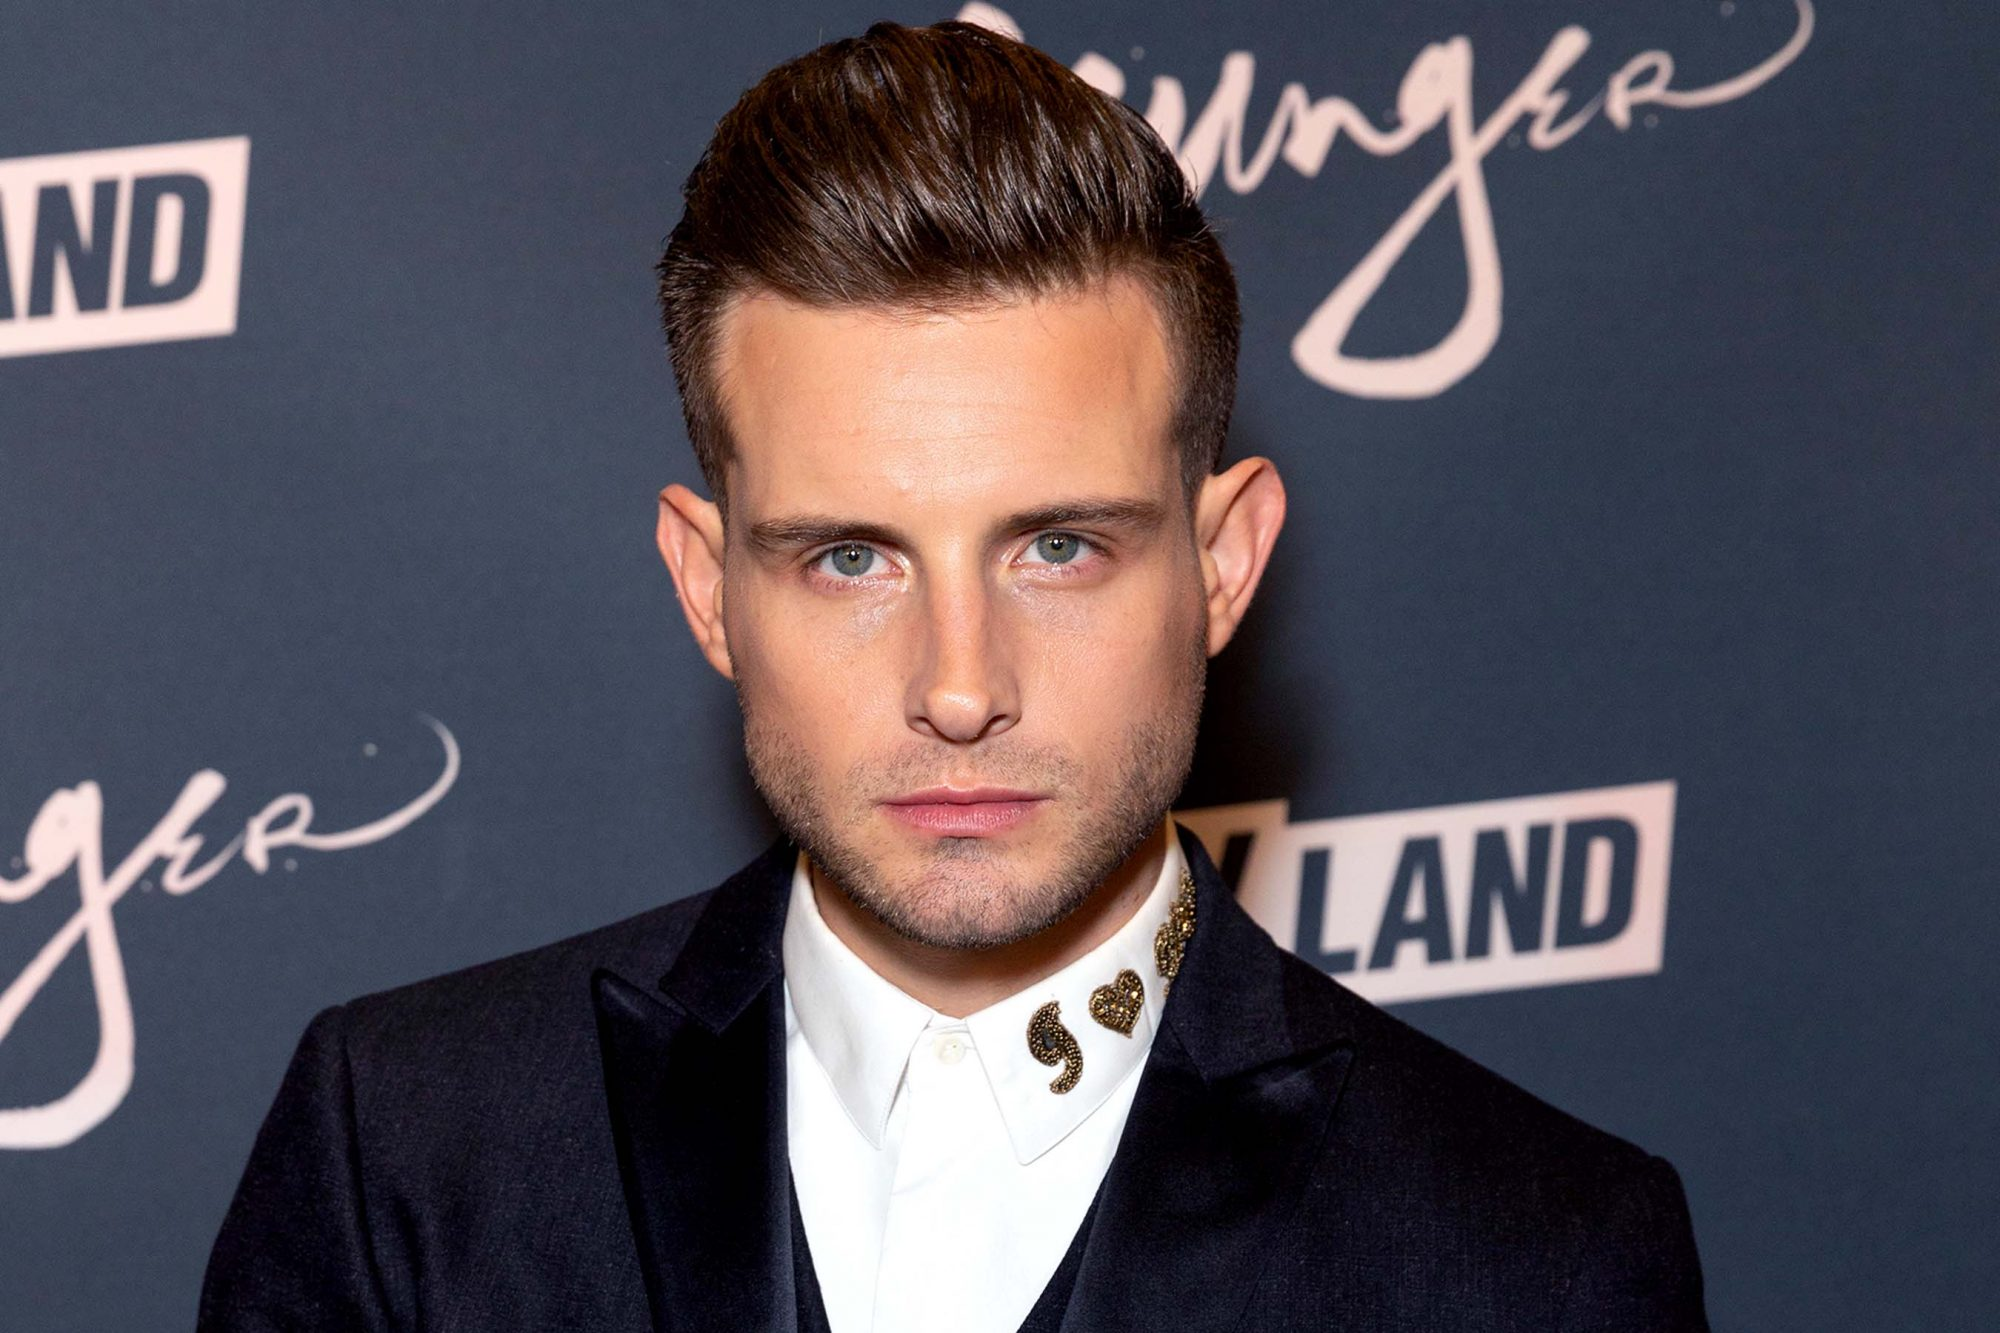 Nico Tortorella wearing suit by John Varvatos attends